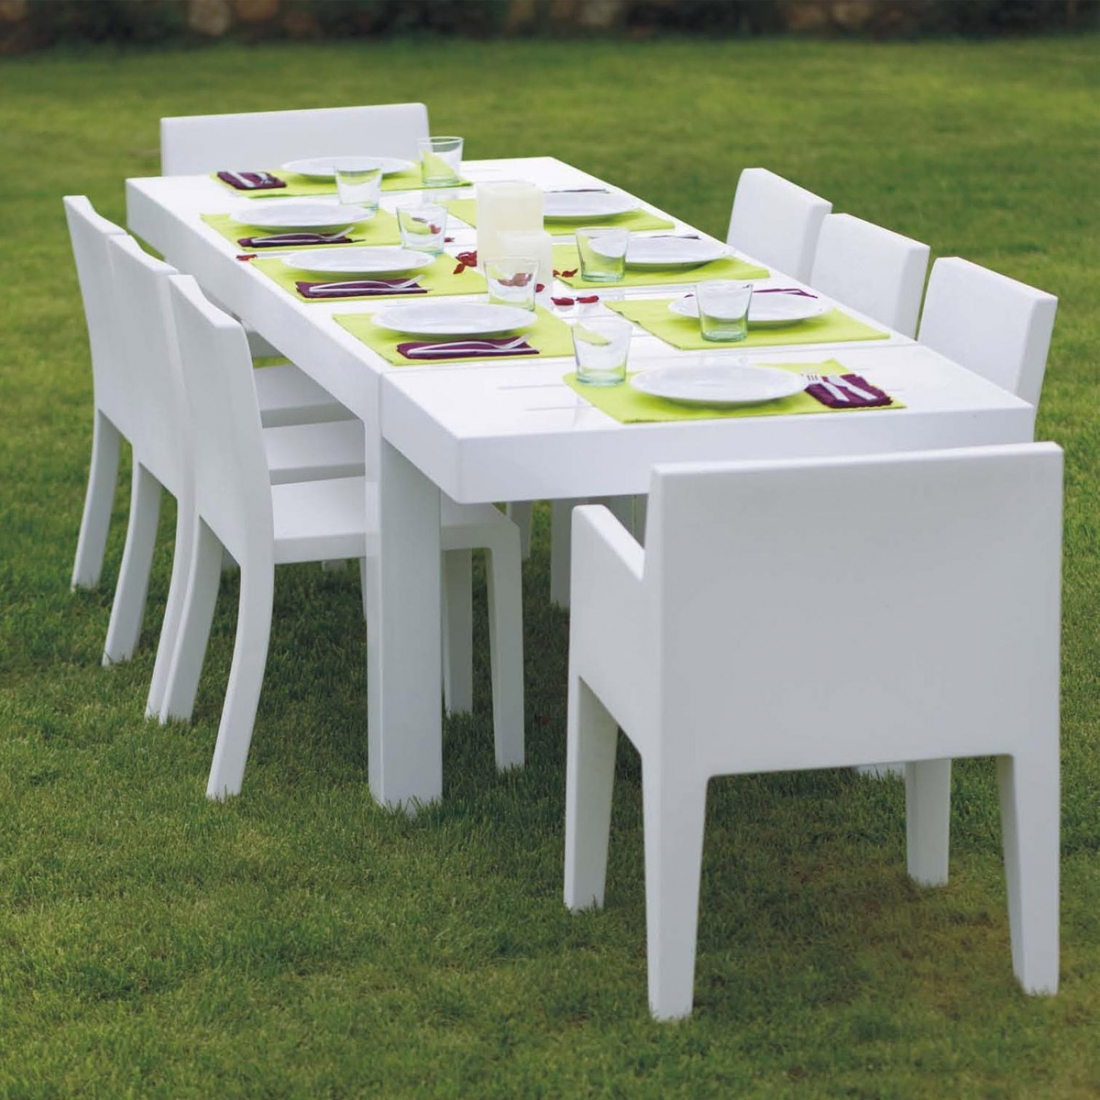 Table de jardin design 10 personnes jut par vondom for Table exterieur 12 places